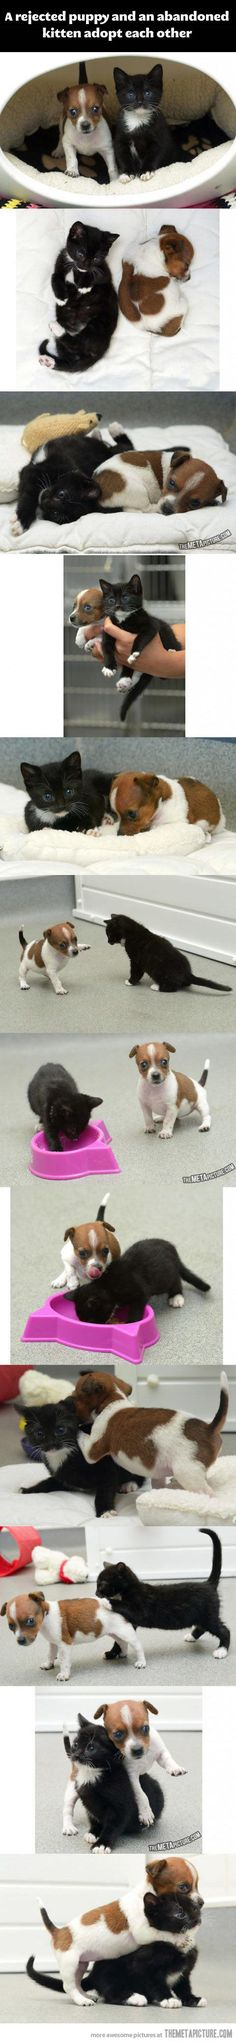 A puppy and a kitten adopt each other…